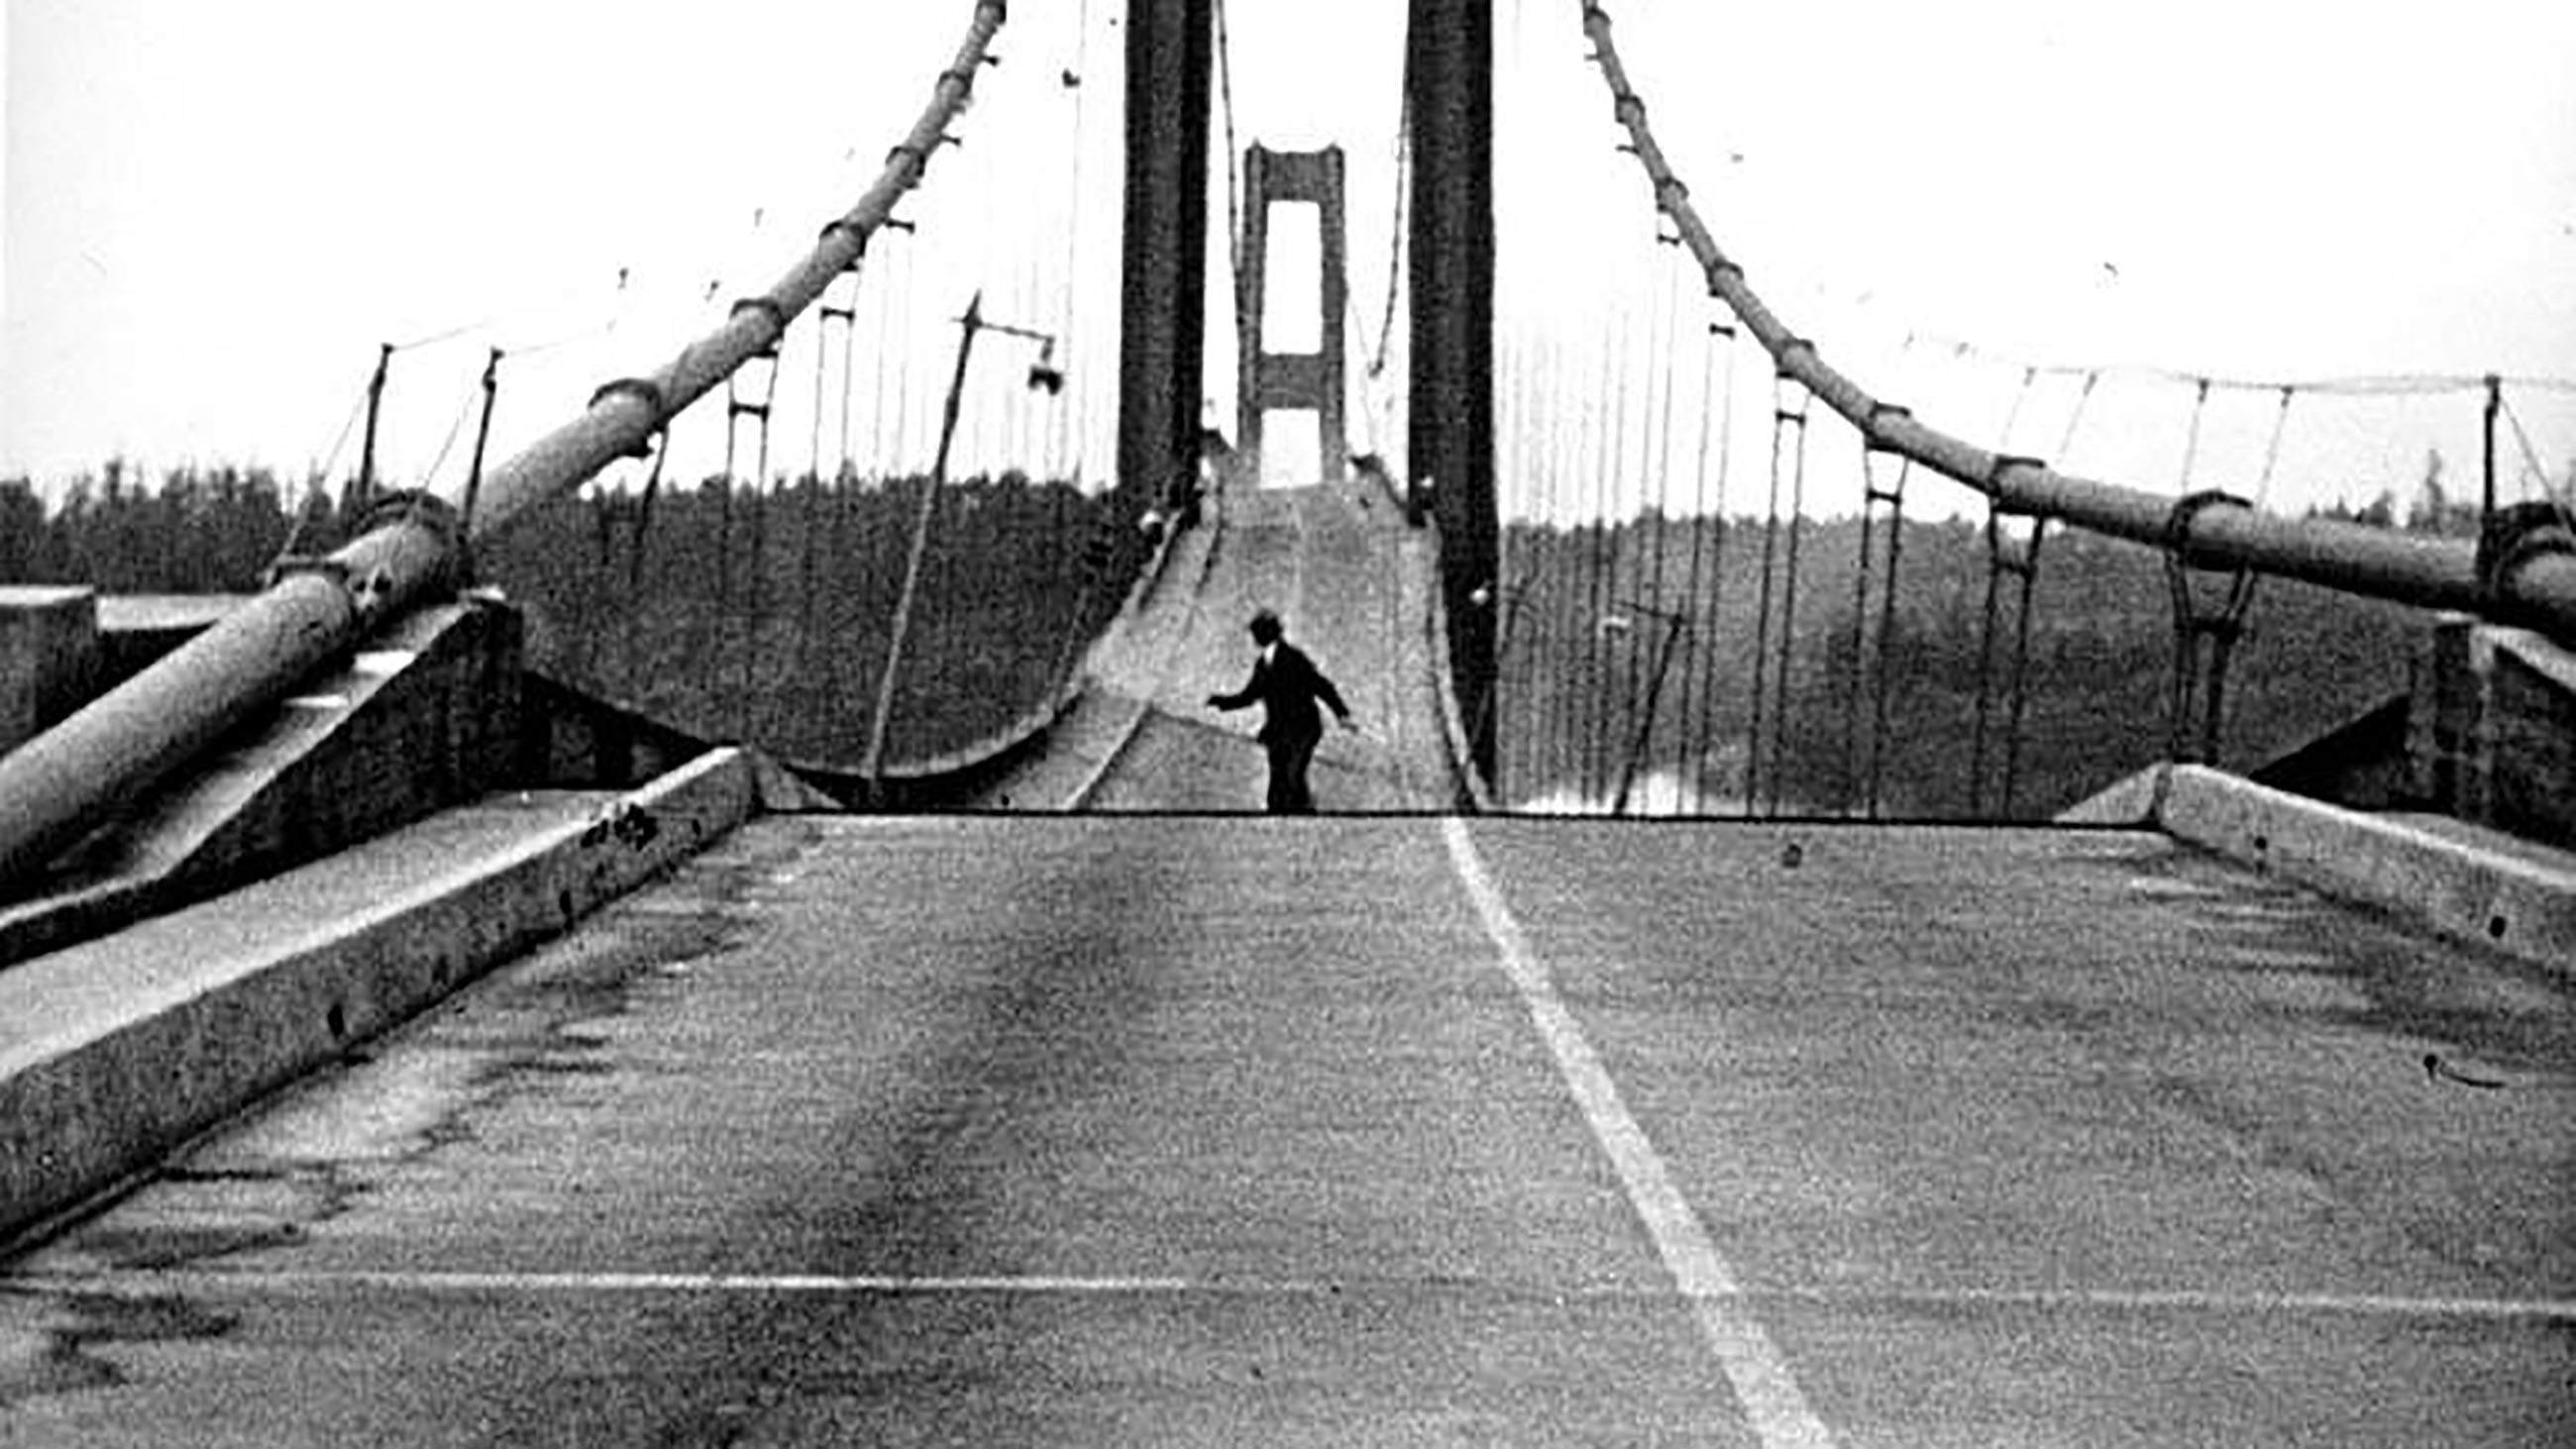 Before You Cross That Bridge: Did the Engineer Learn Ethics?